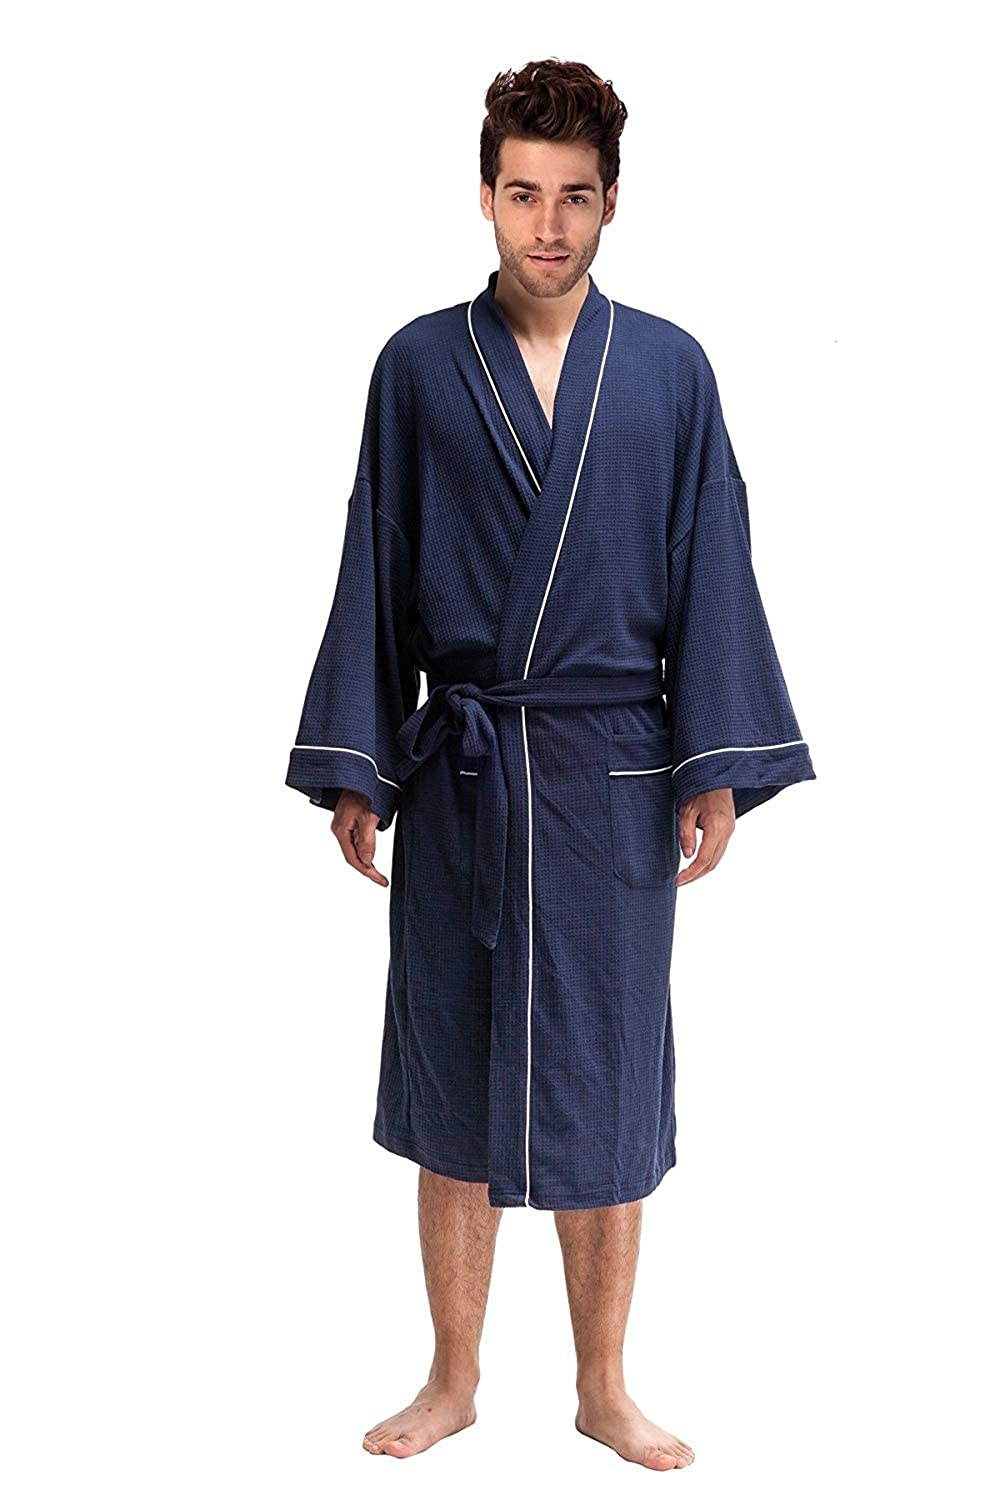 68595d7298 DandyChic Men s Kimono Cotton Robes Lightweight Spa Robe Bathrobes  Nightwear- Long at Amazon Men s Clothing store